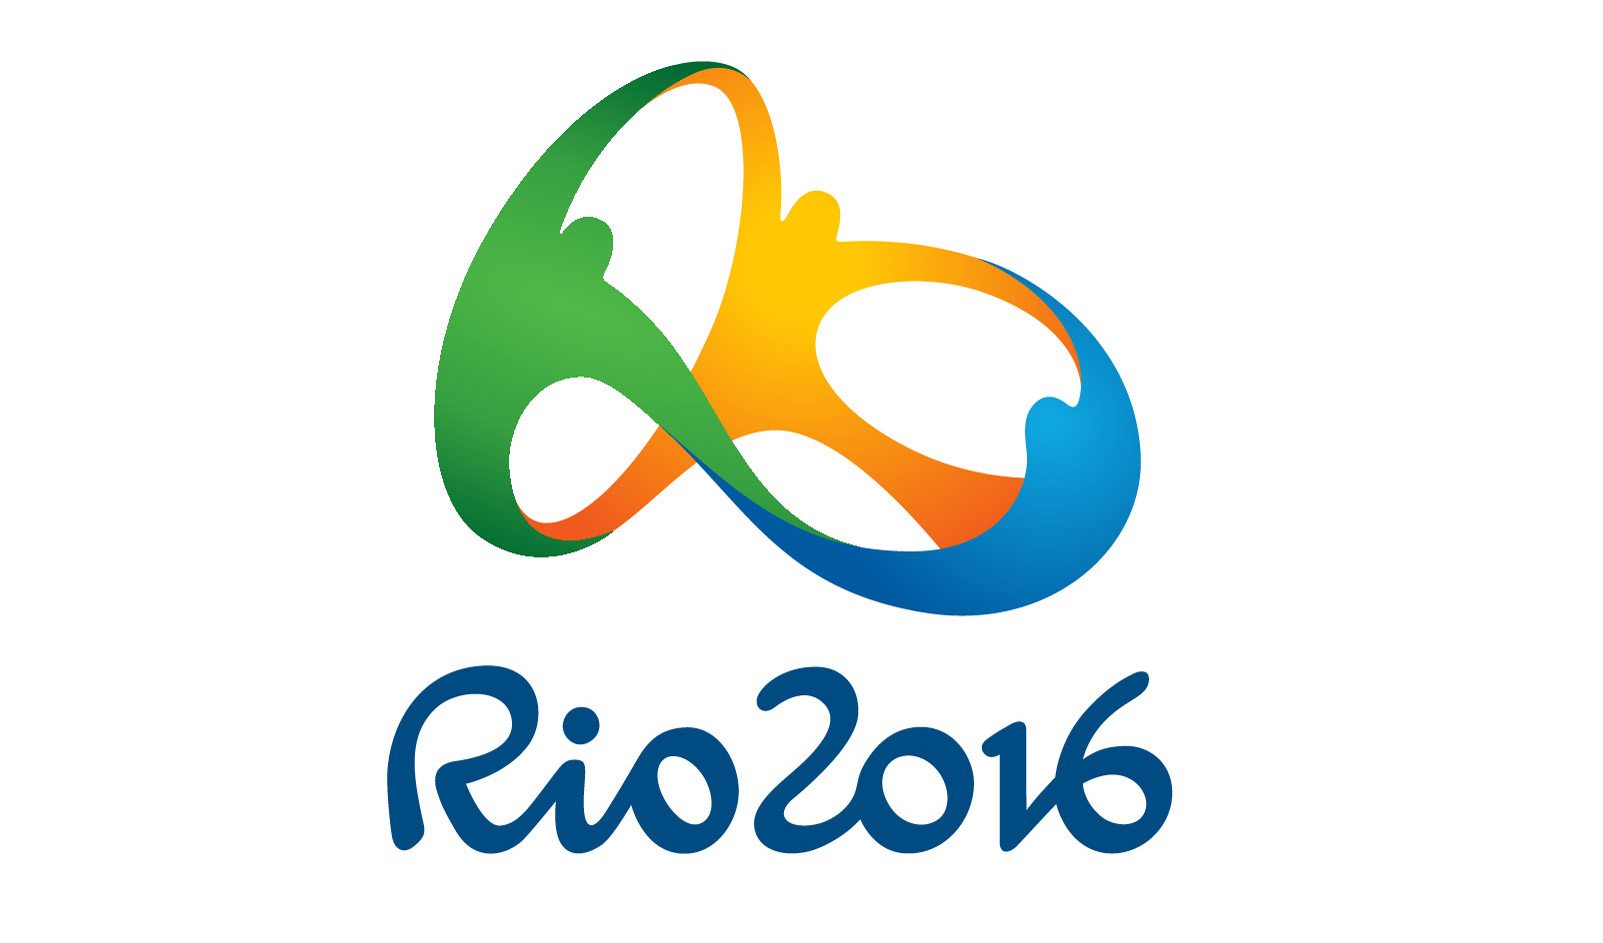 Rio 2016 Olympic Logo Vector Graphic_6